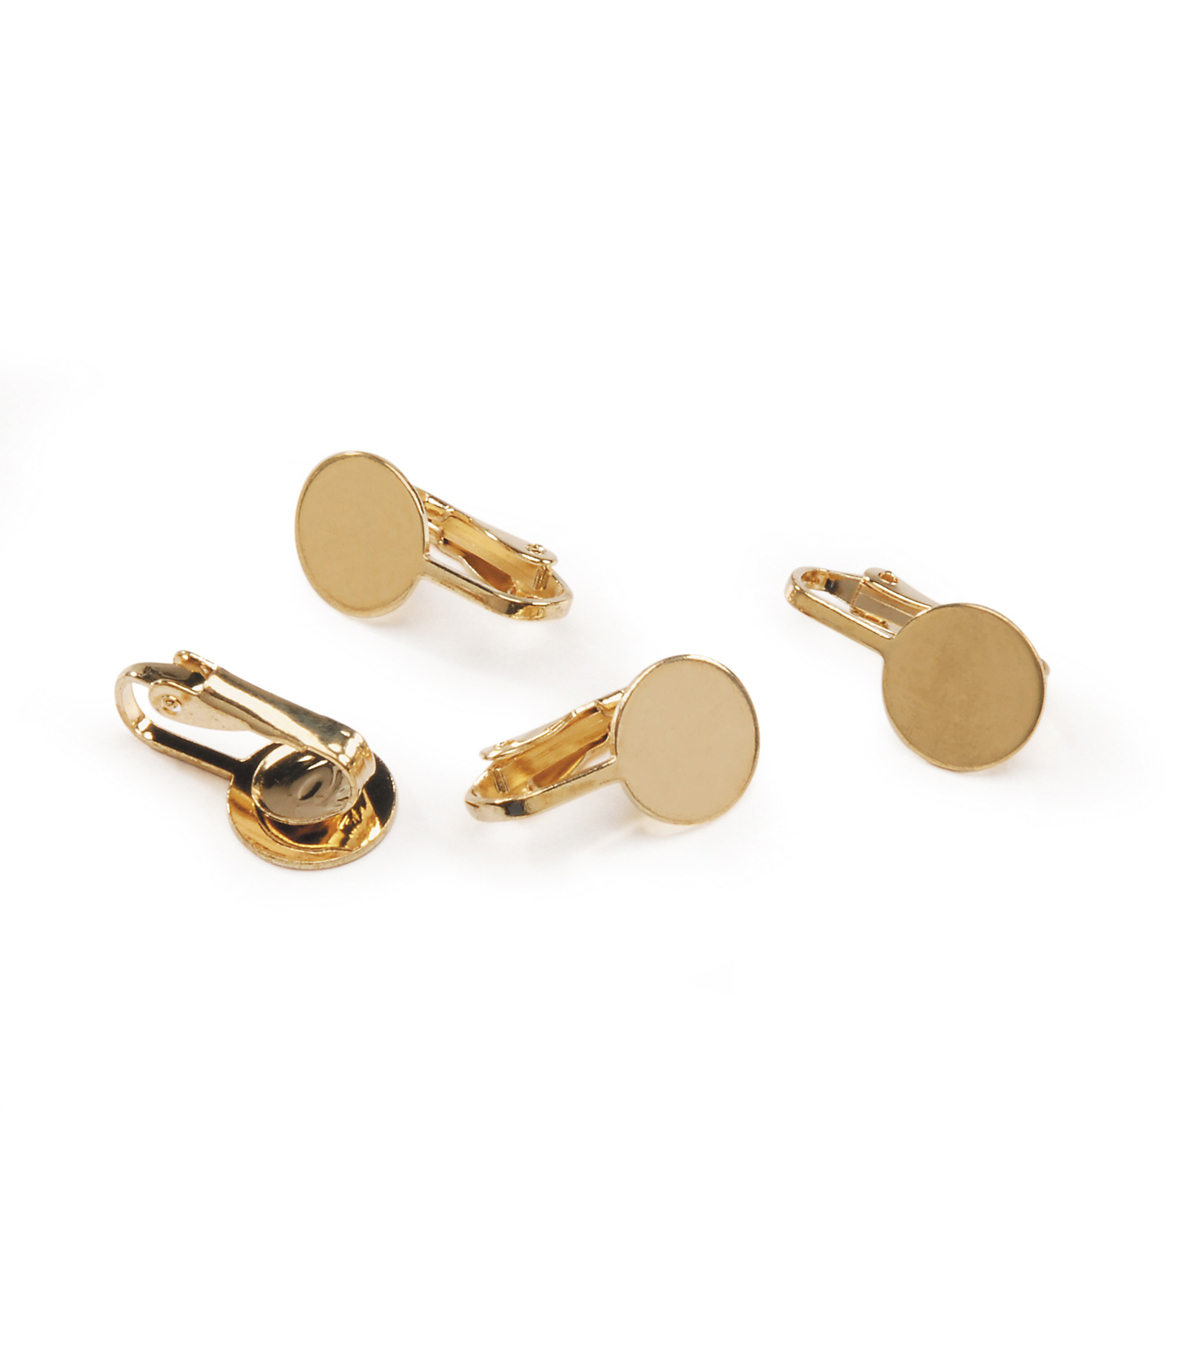 Gold Colored Steel Earring Clip with Pad, 4pc/pkg